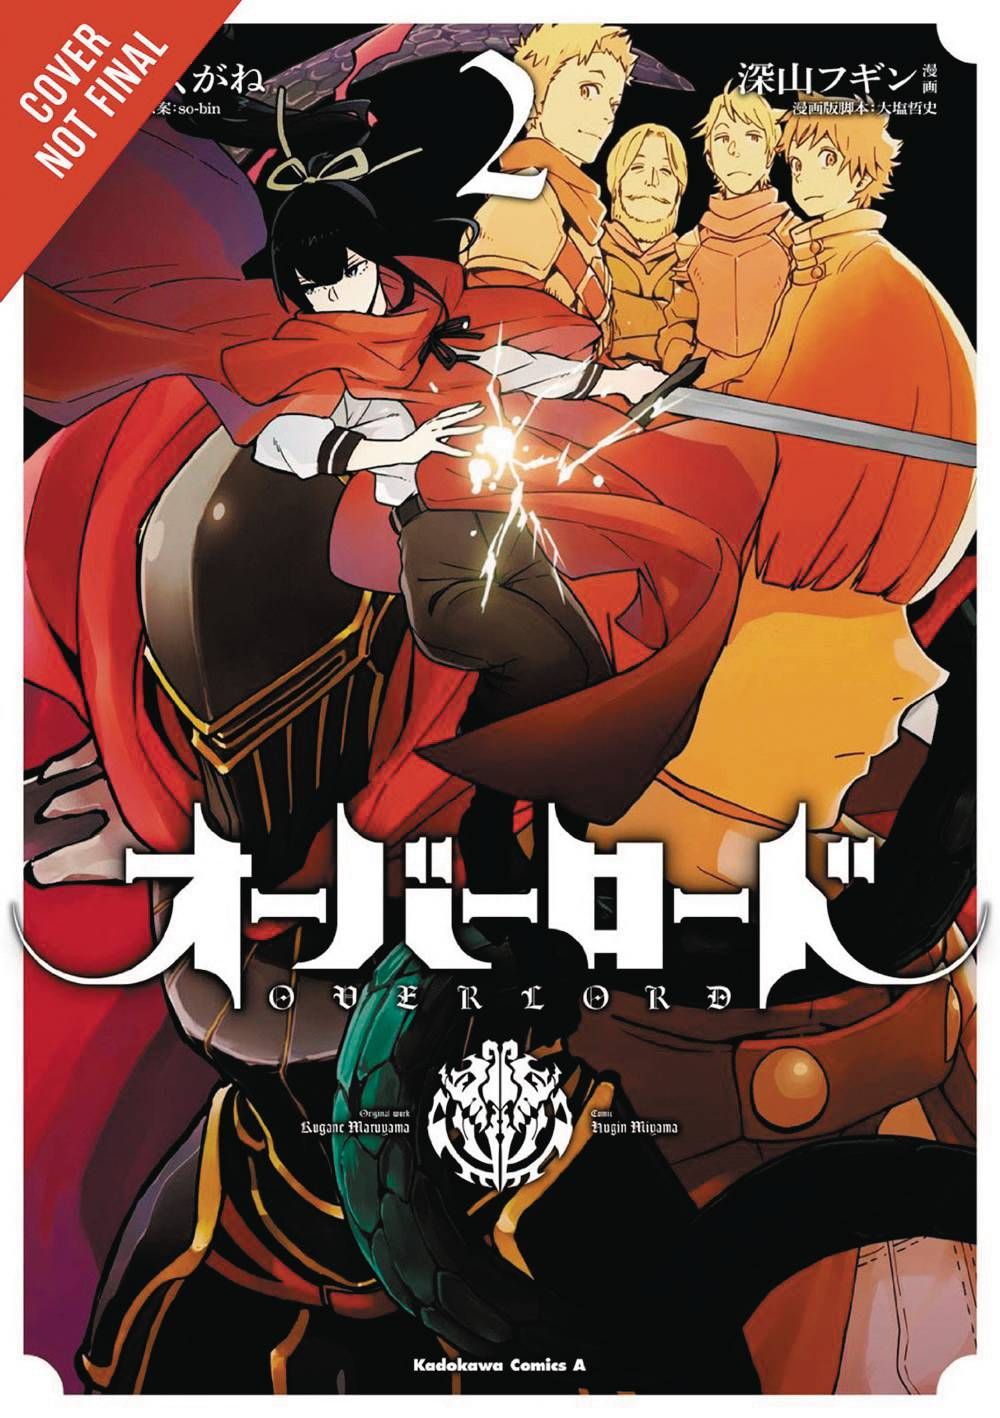 OVERLORD GN VOL 02 (MR)